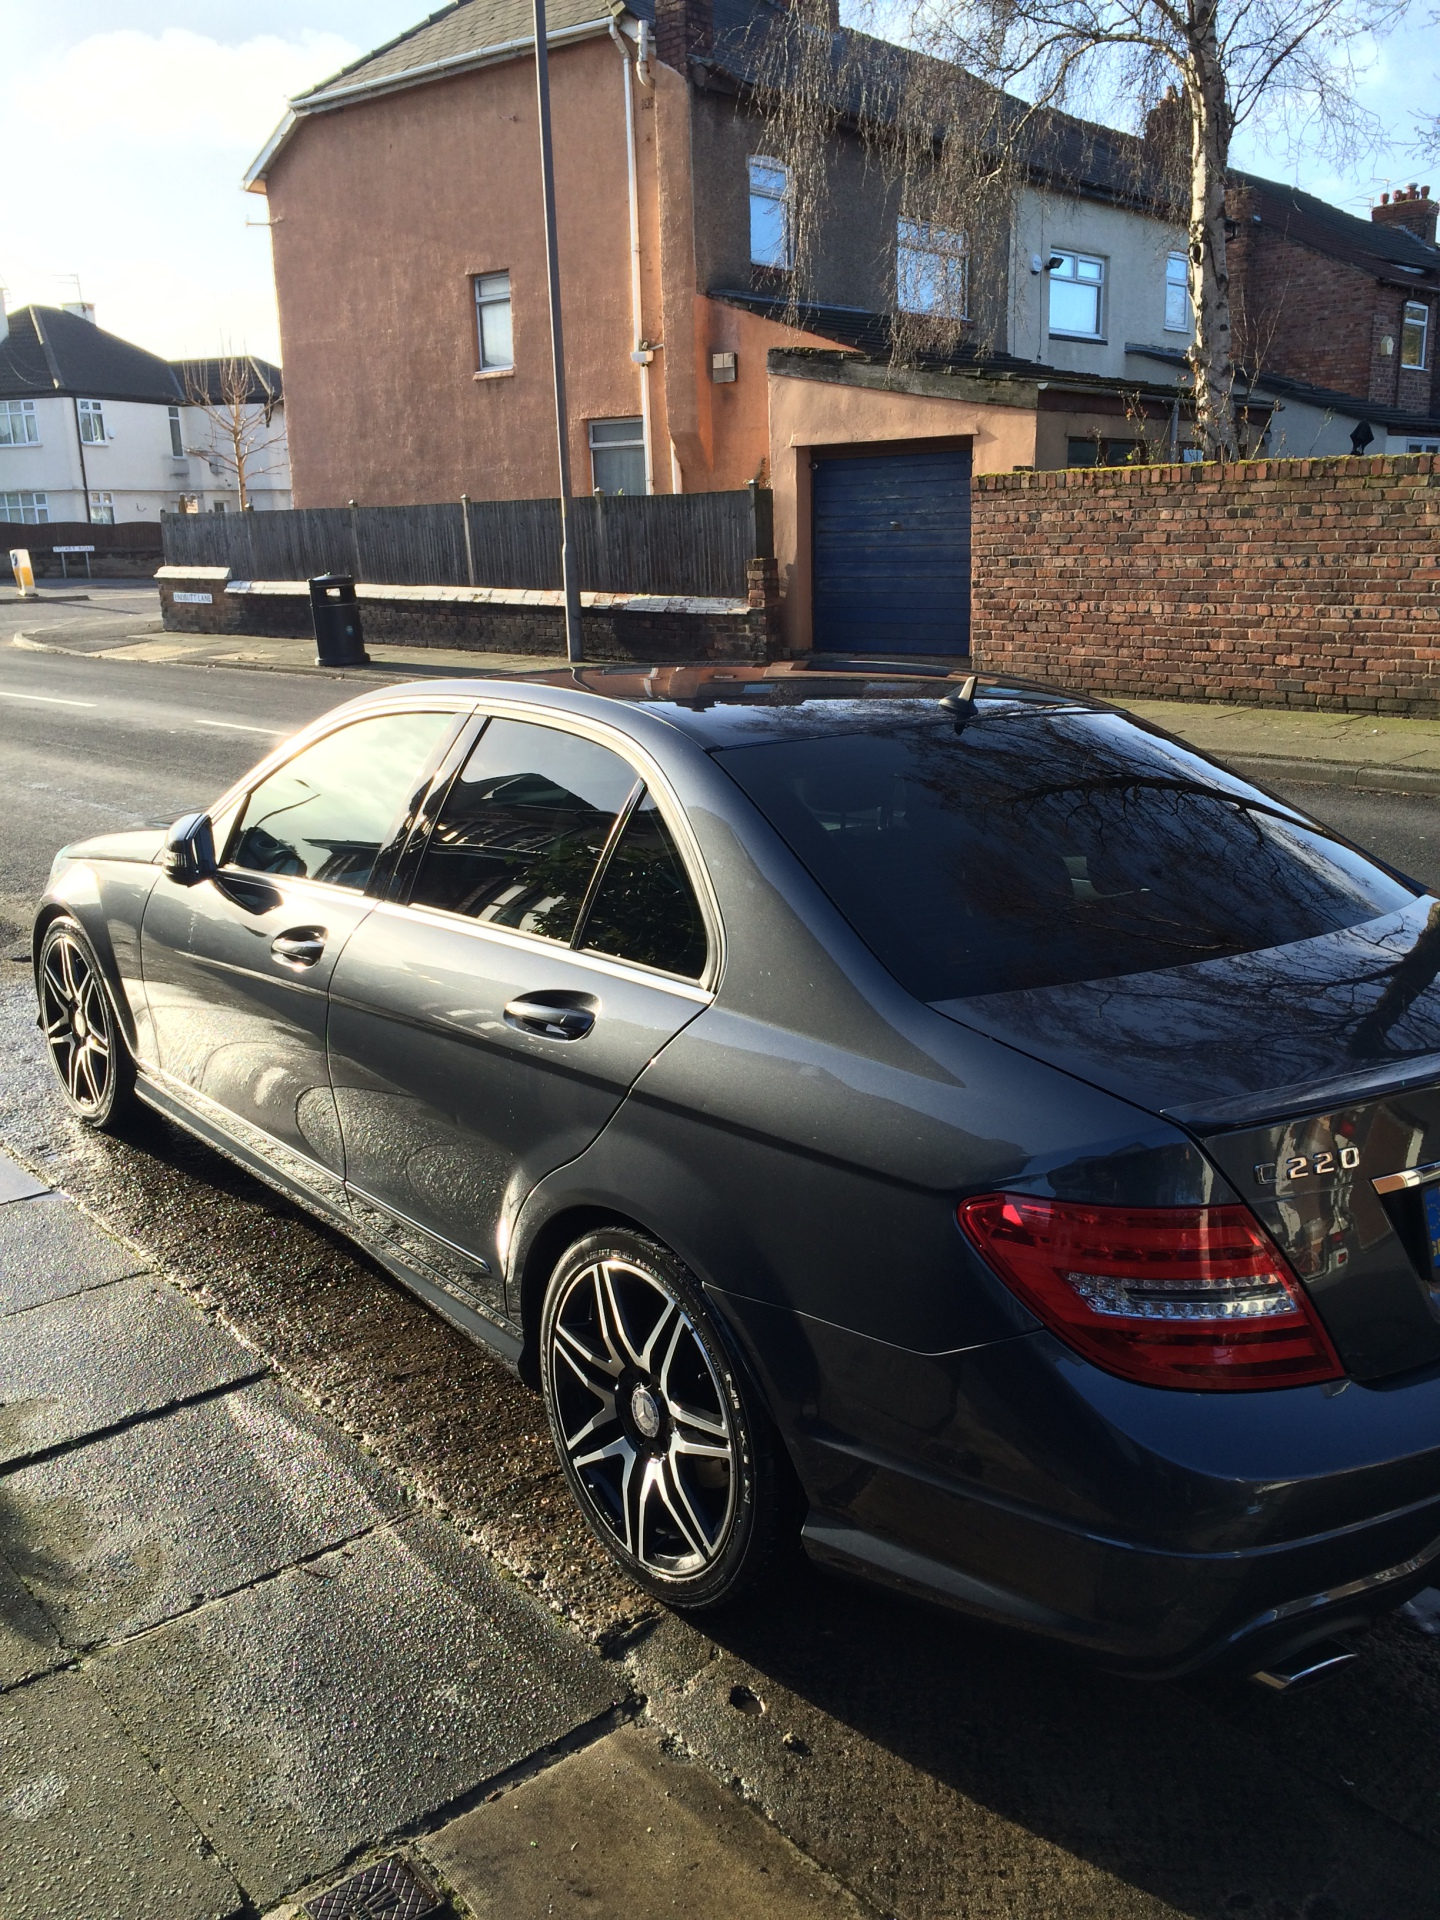 Professional car valeting